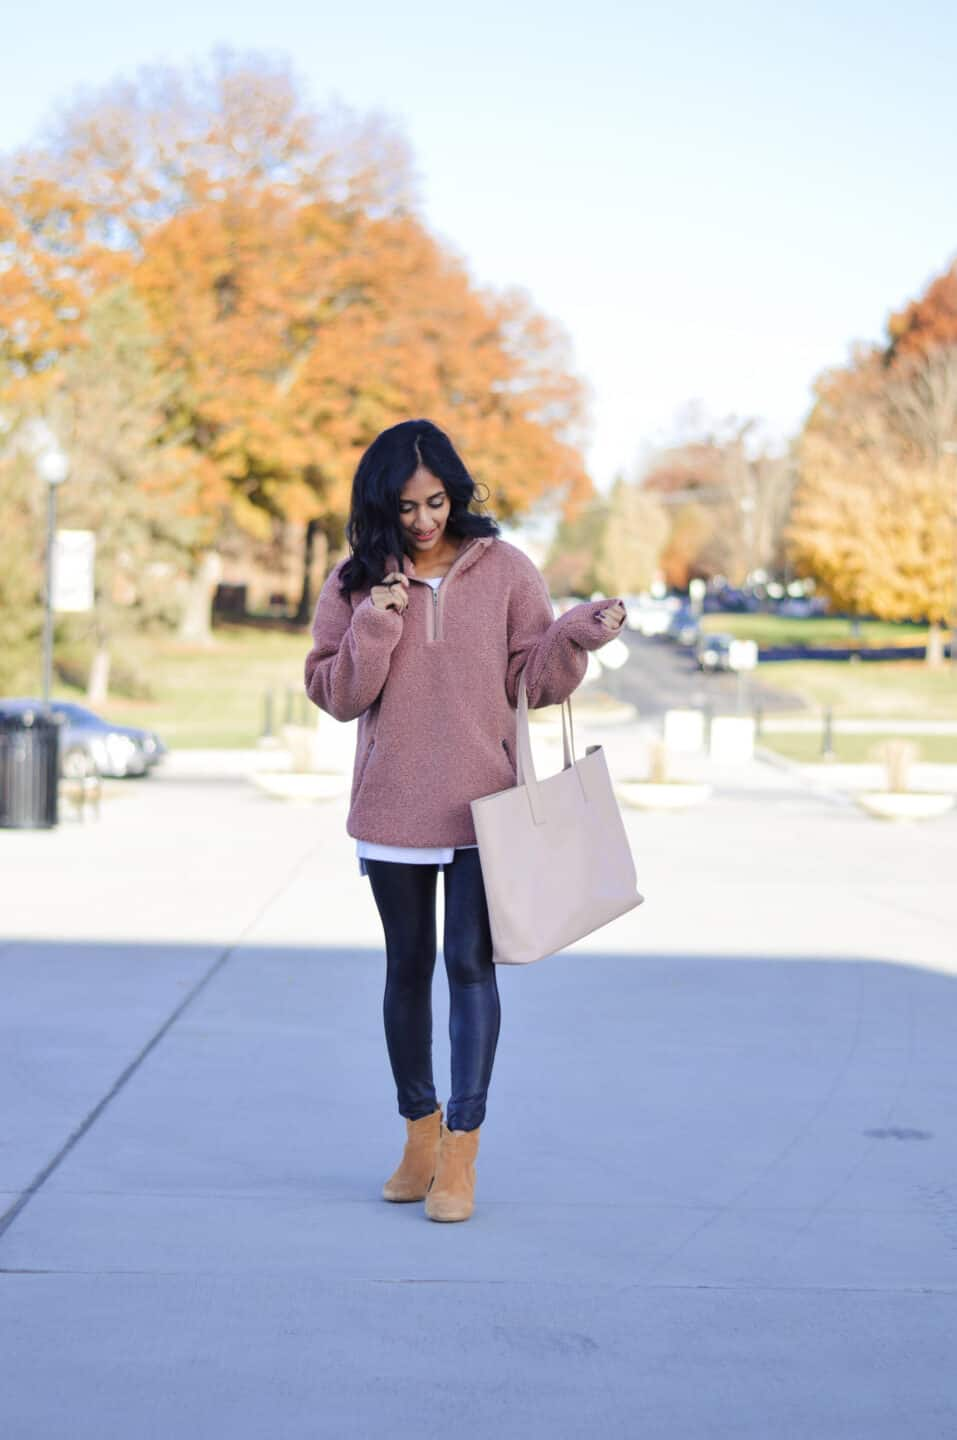 Cozy Sherpa Pullover Outfit